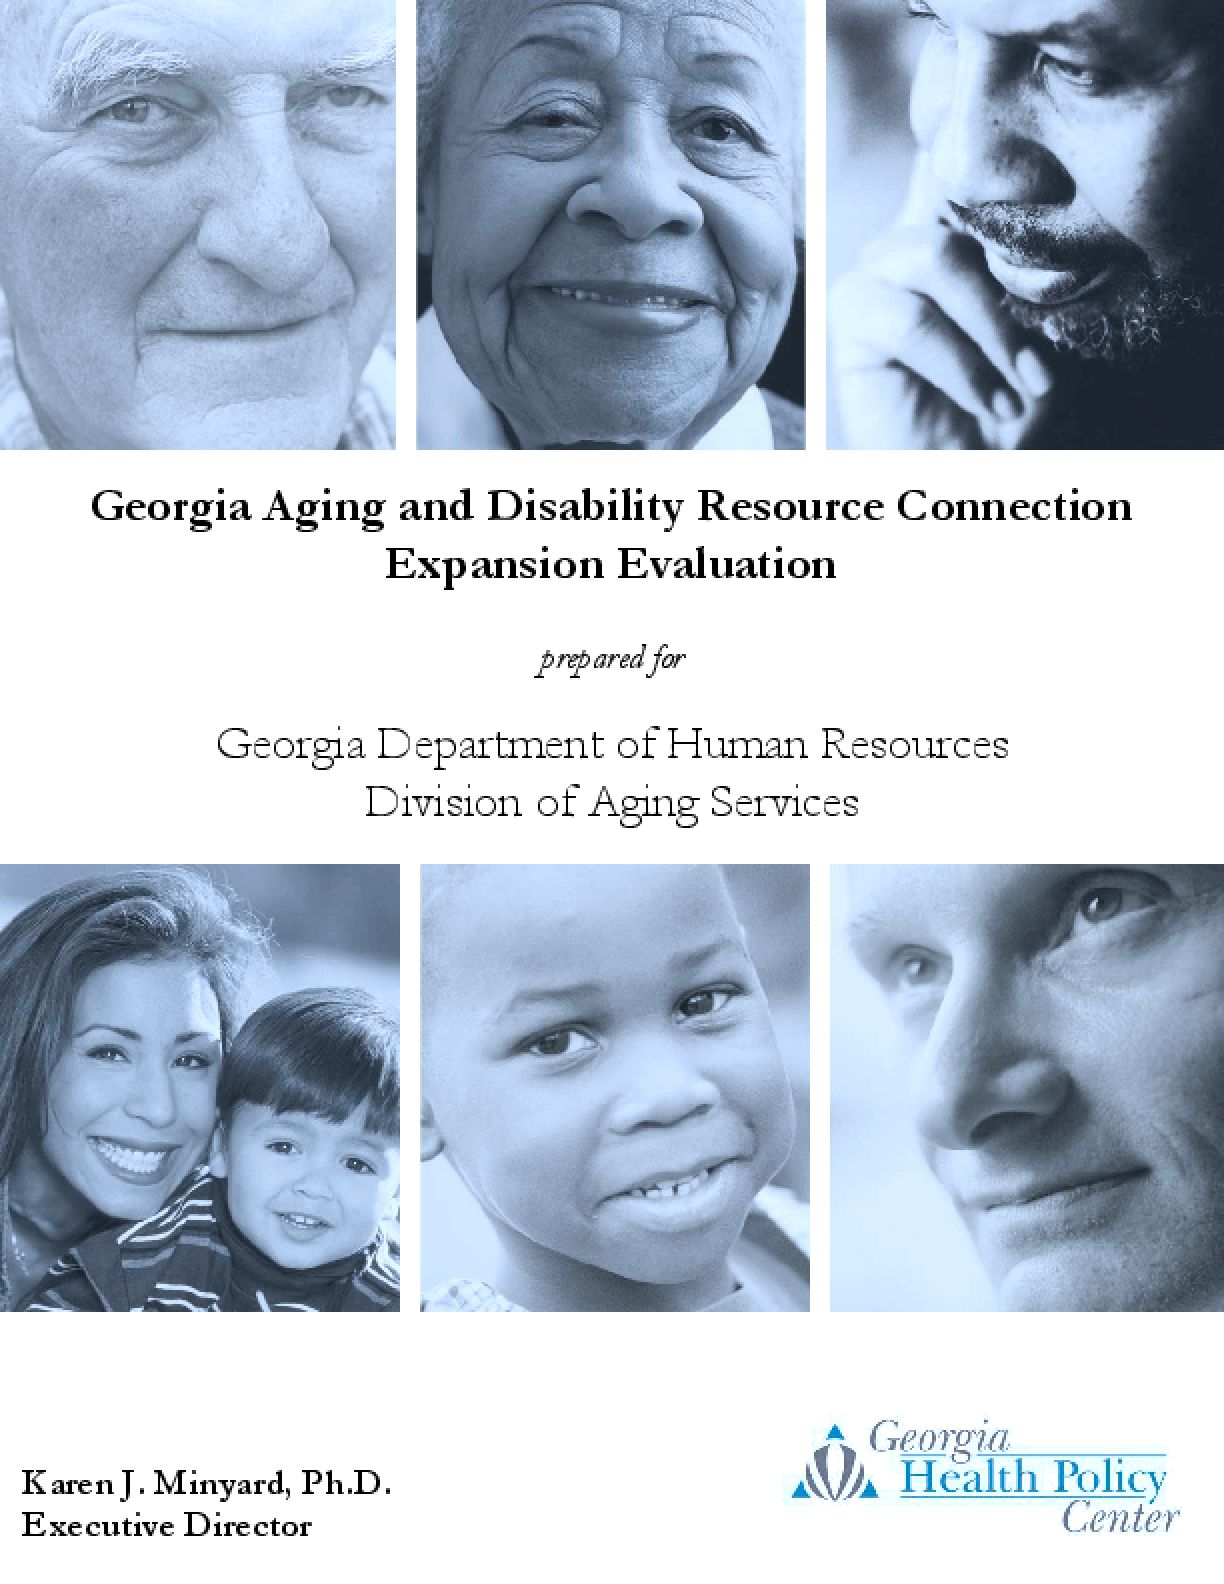 Georgia Aging and Disability Resource Center Connection Expansion Evaluation